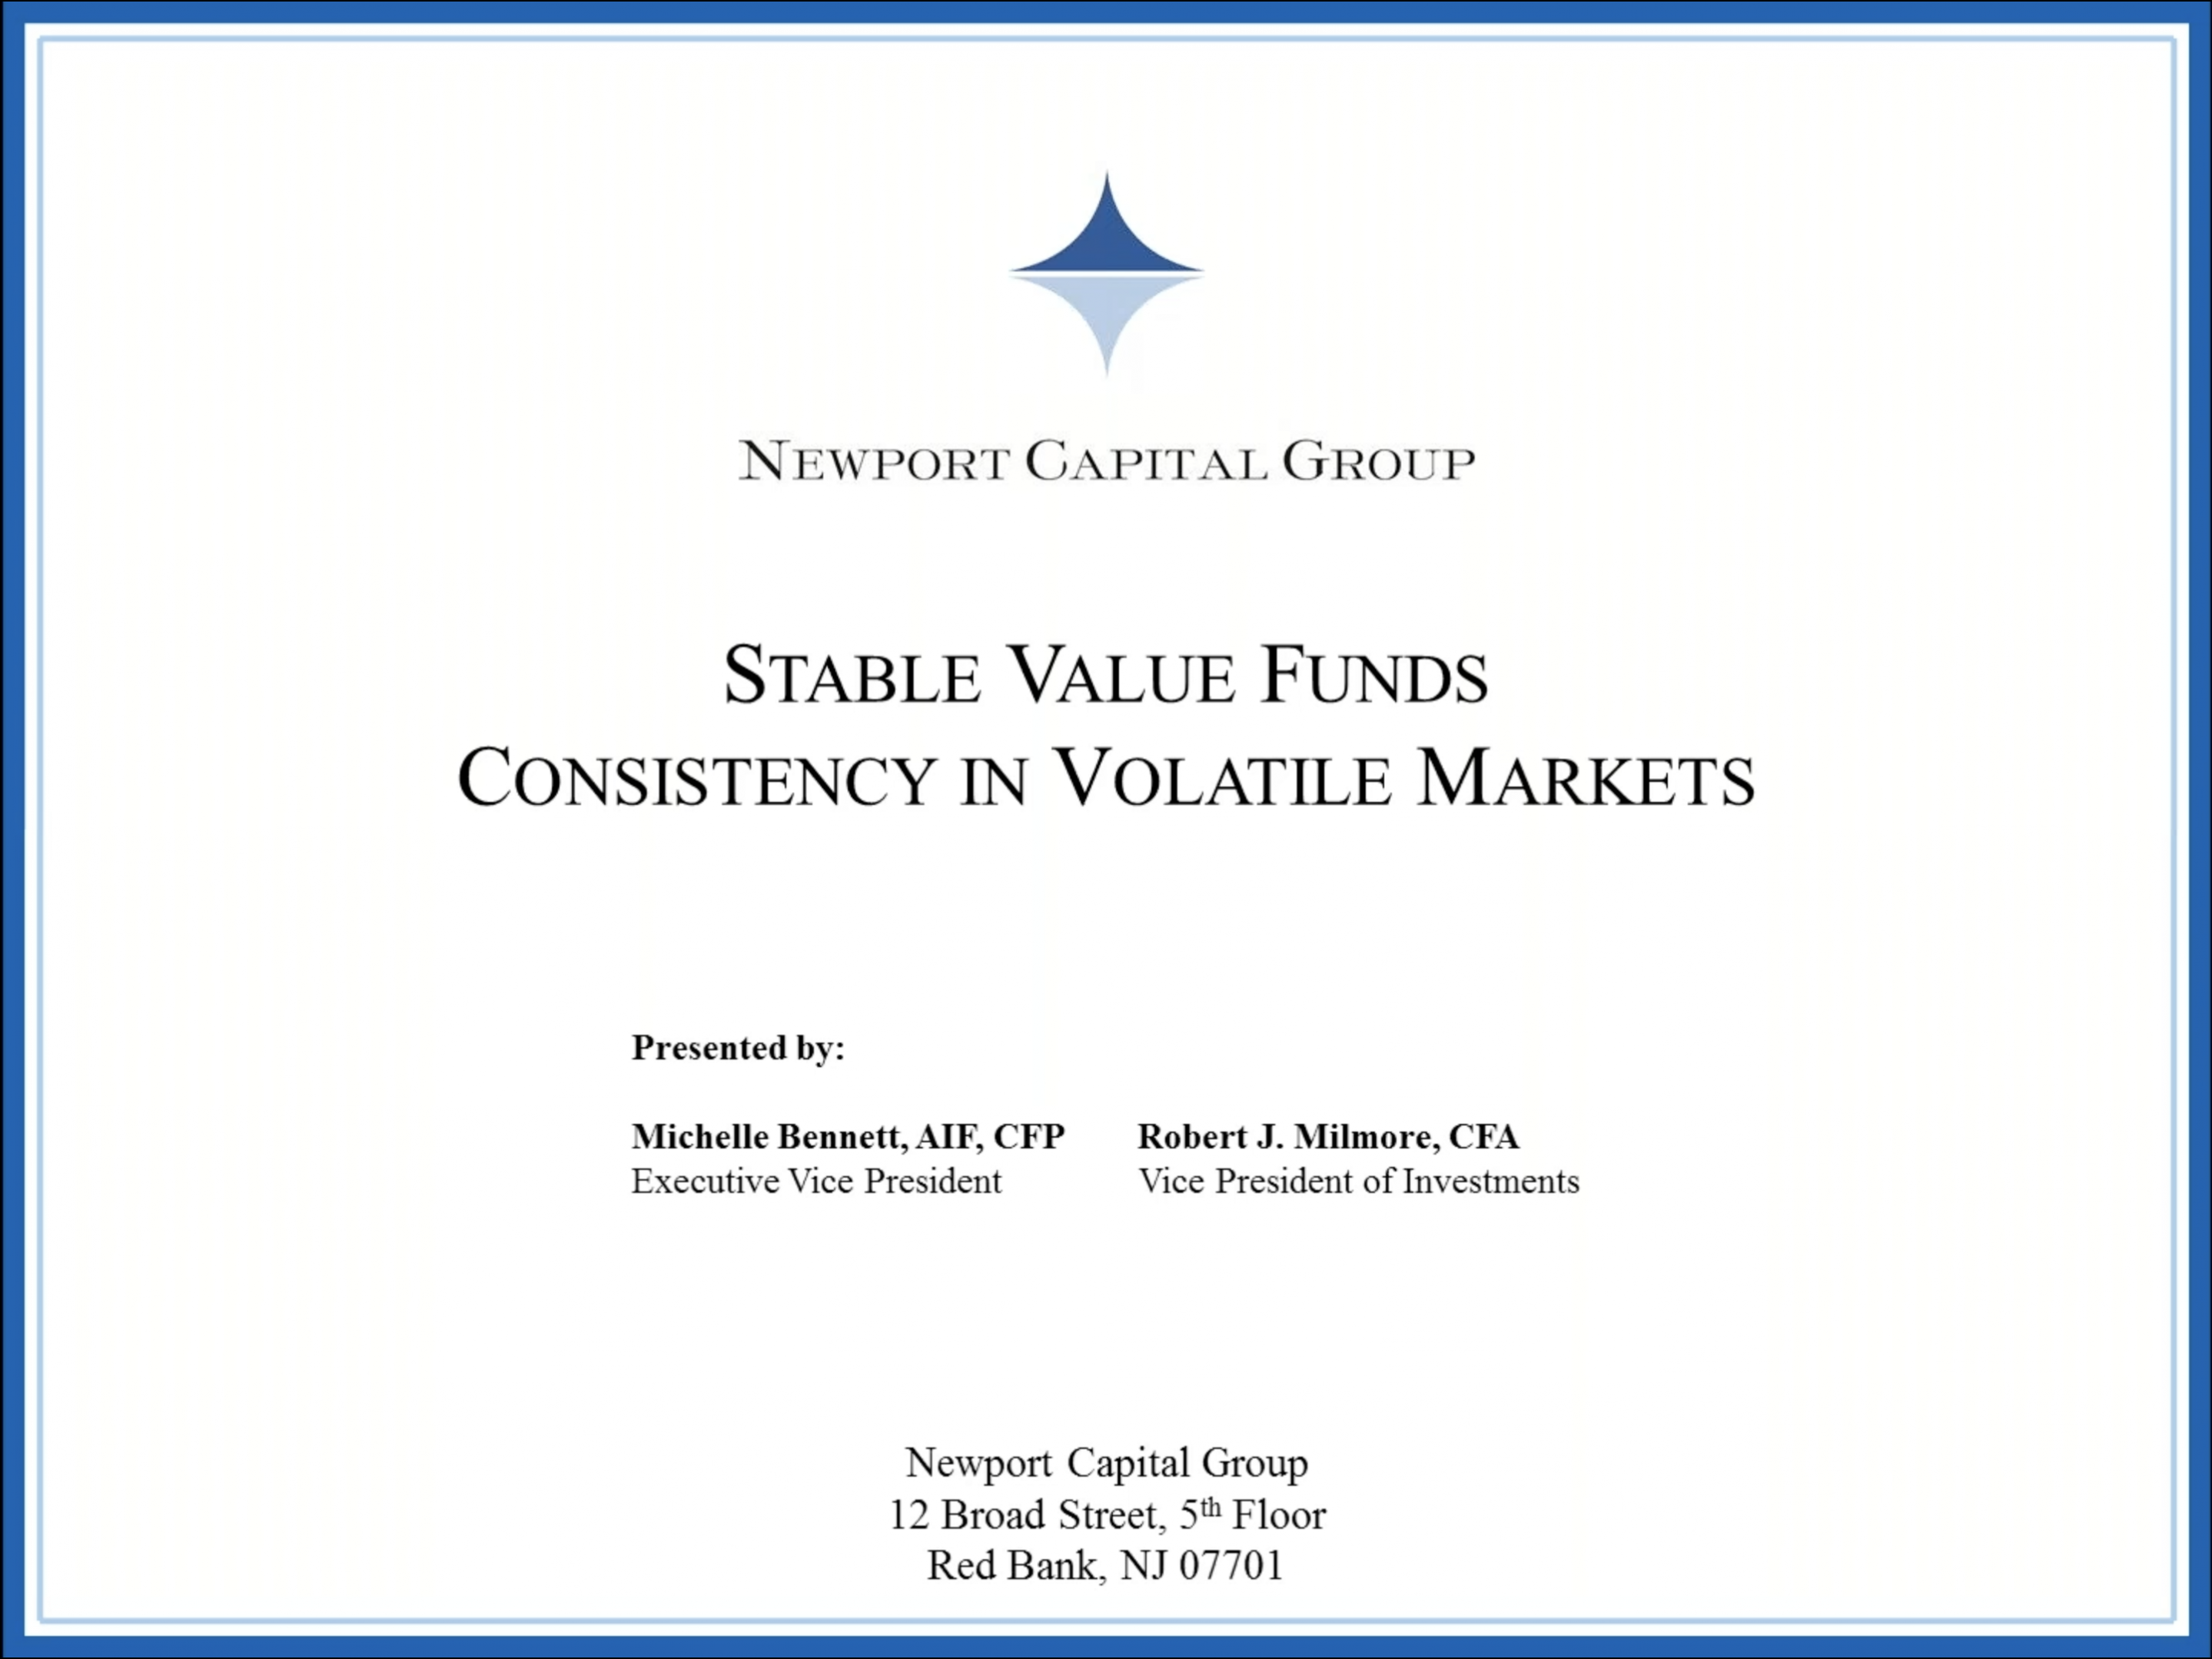 Stable Value Funds: Consistency in Volatile Markets